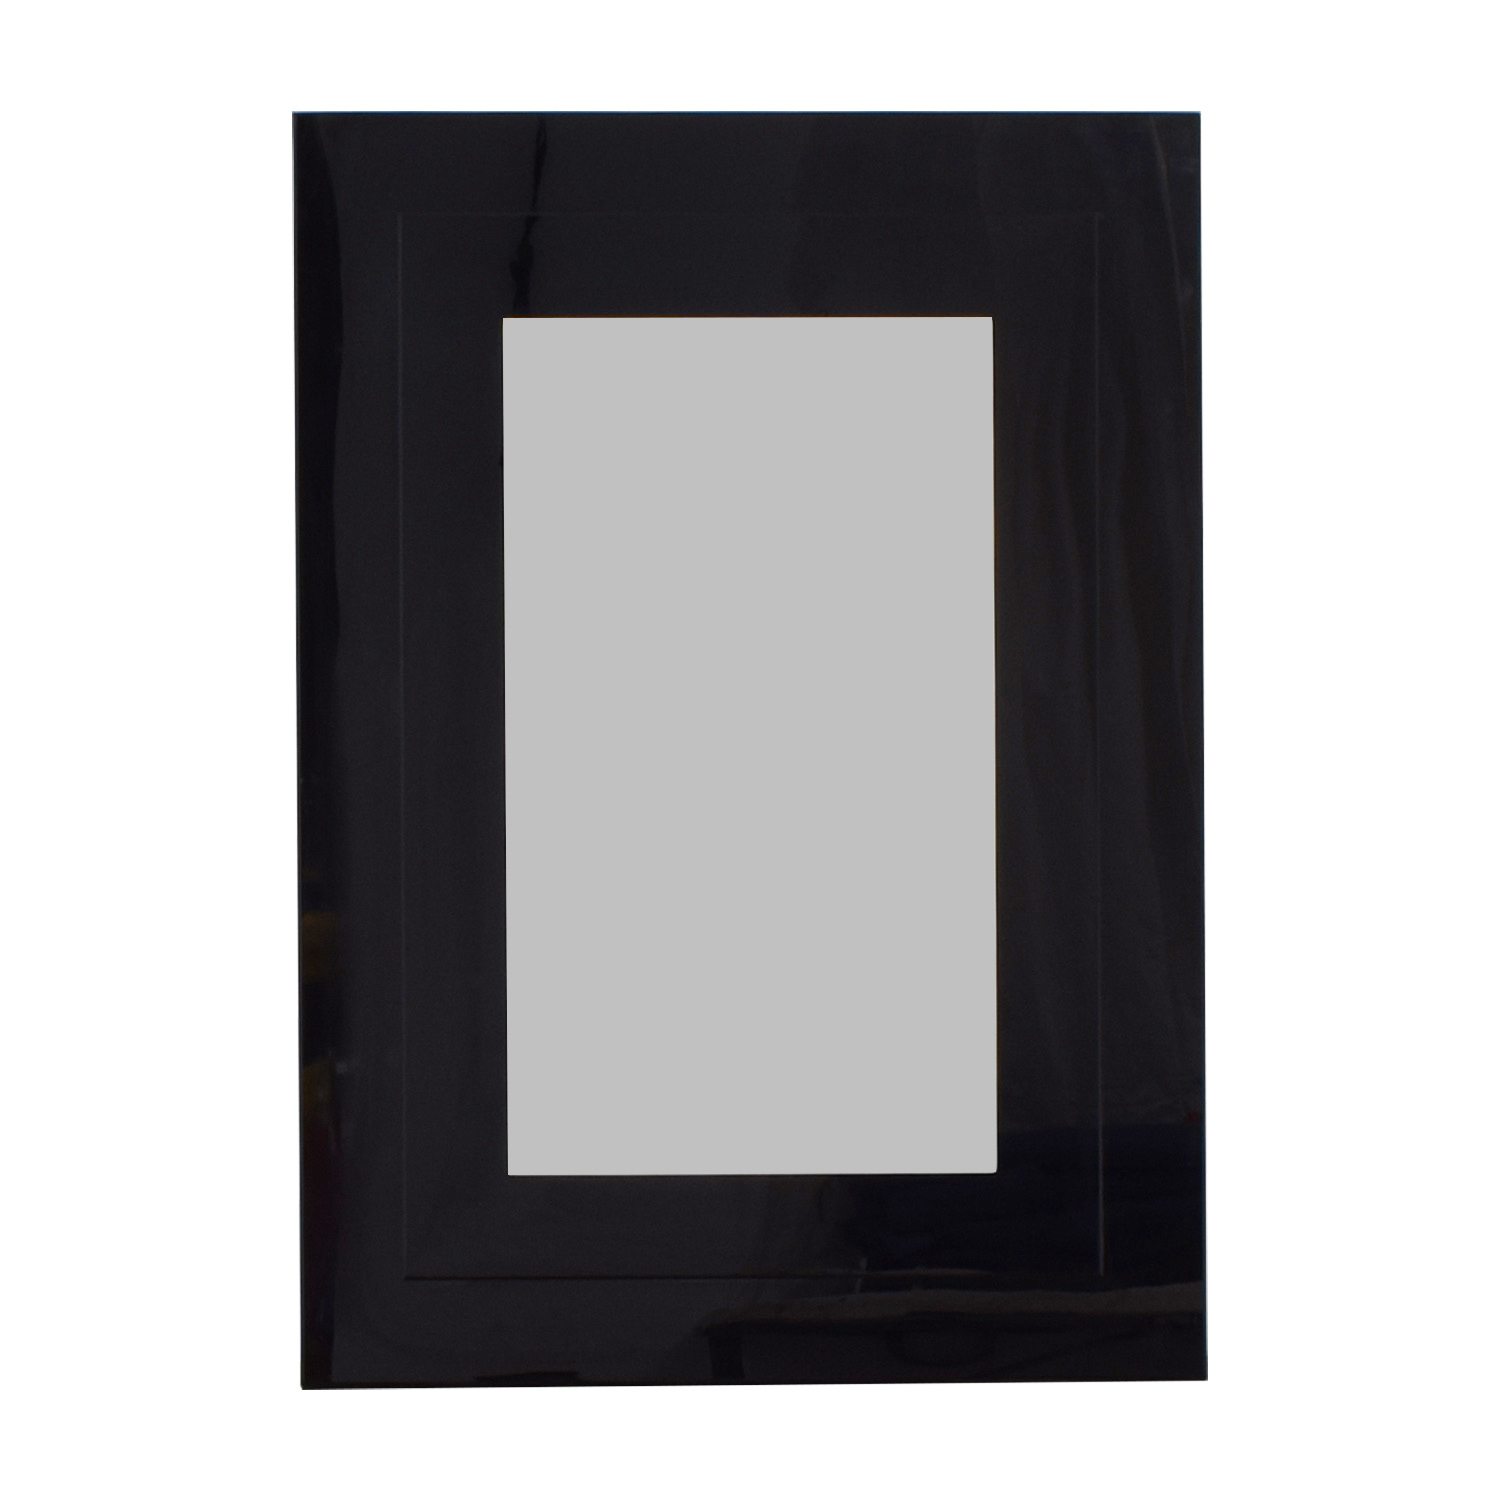 Glassworks Glassworks Black Framed Wall Mirror used